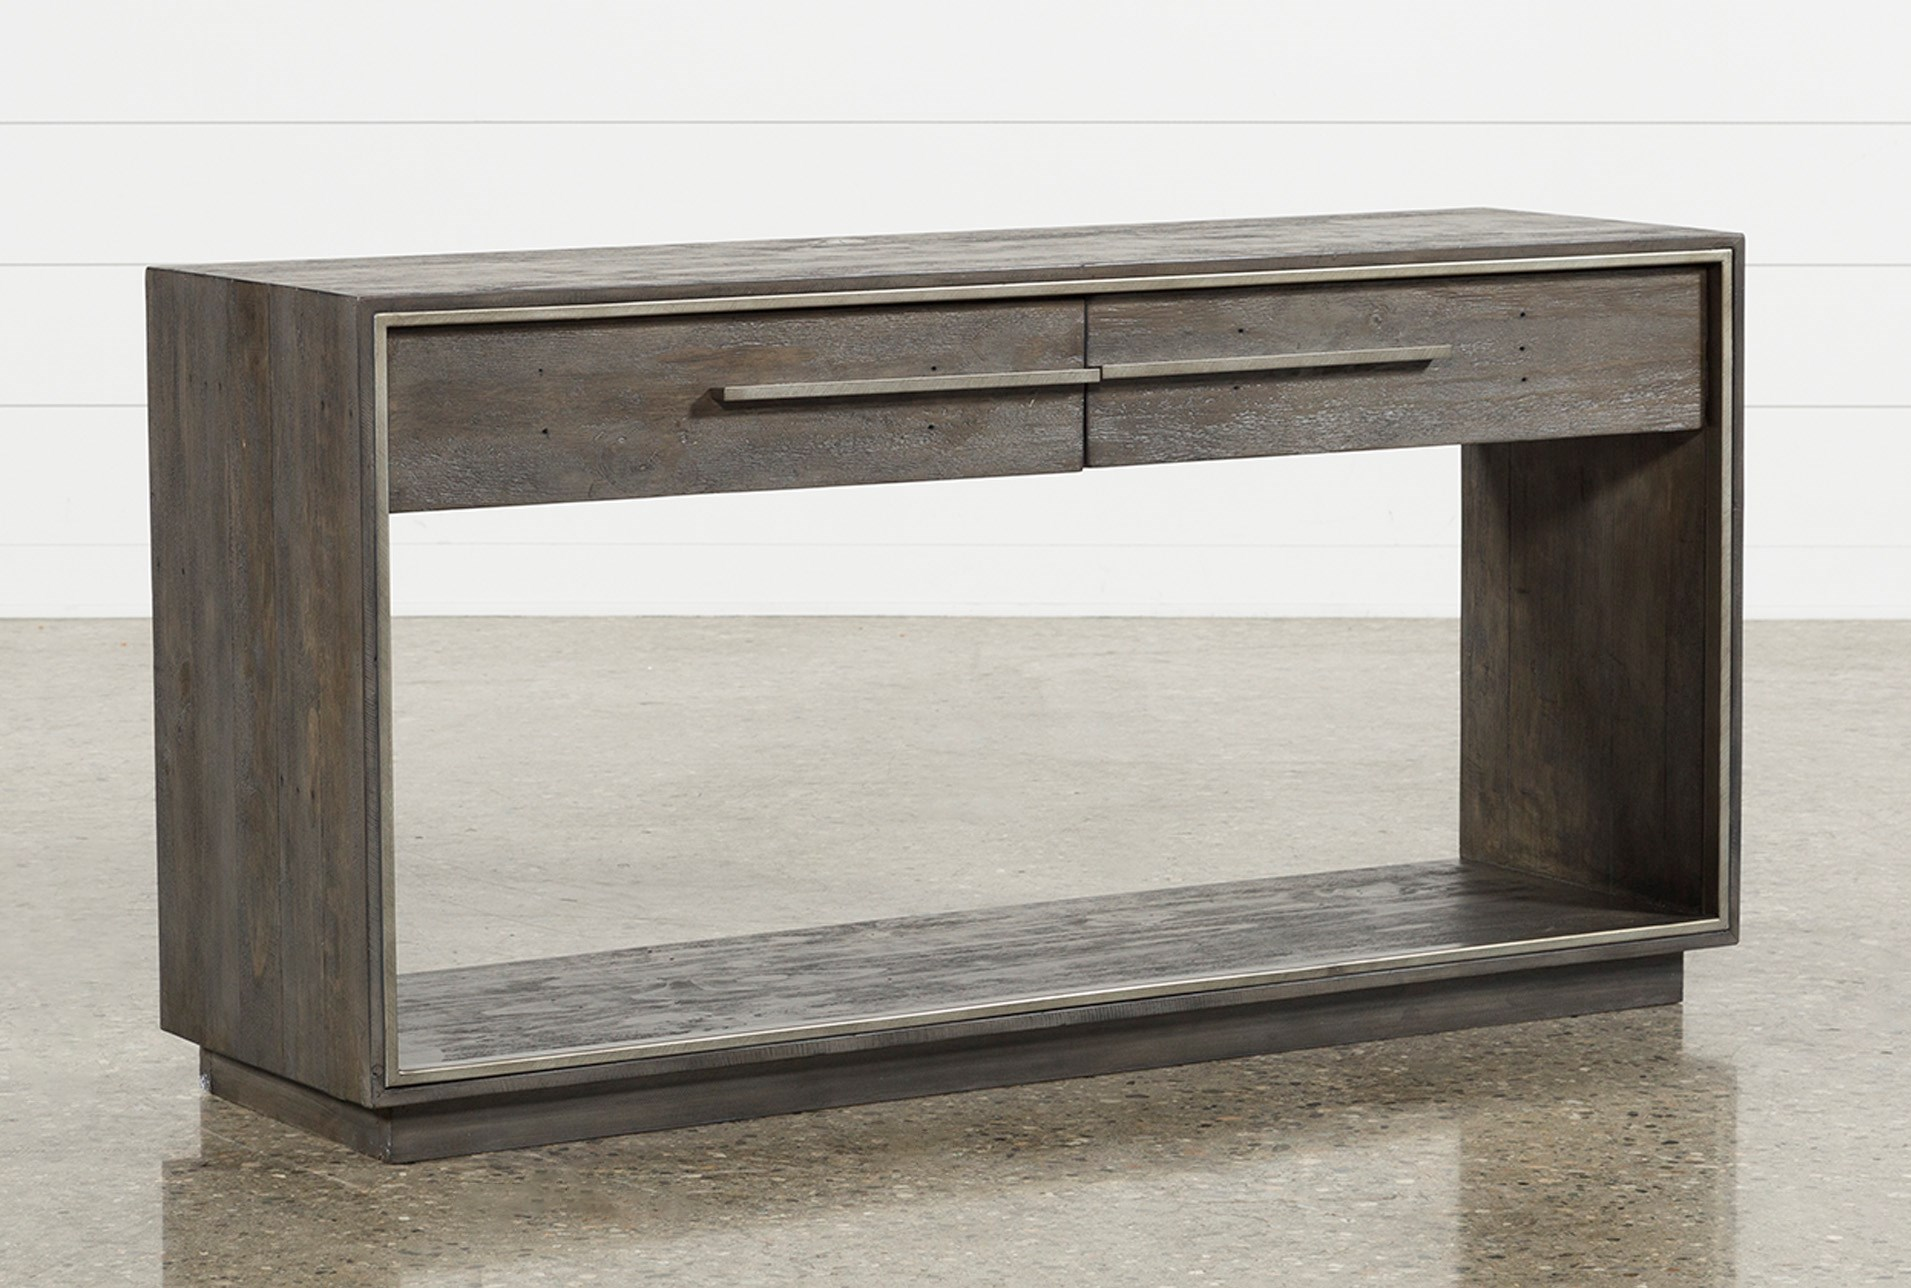 Logan sofa table qty 1 has been successfully added to your cart